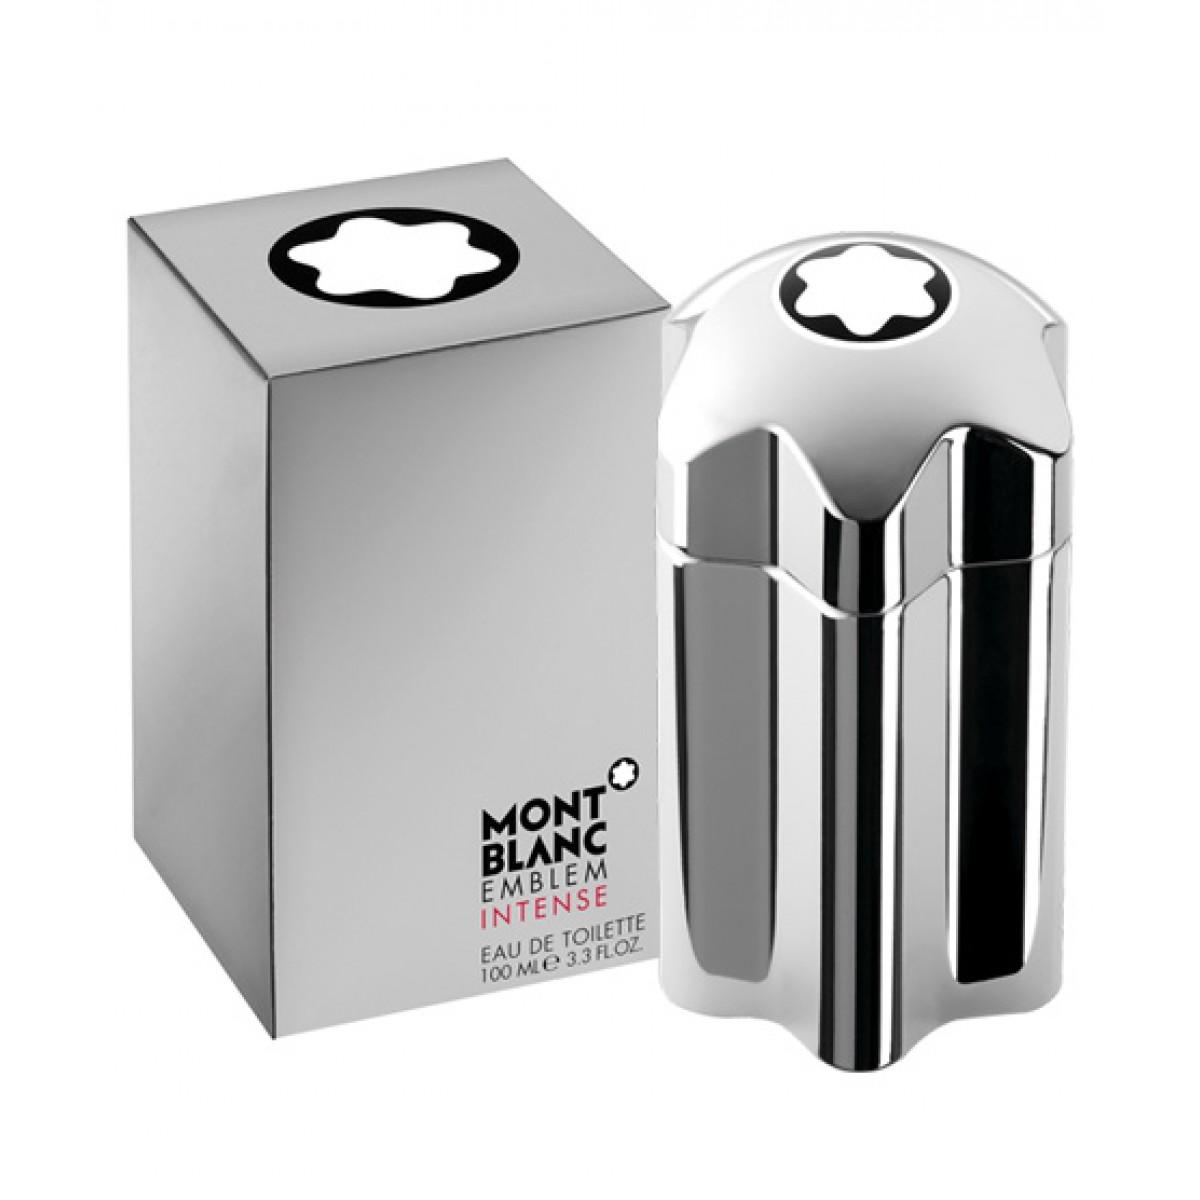 Buy Sell Cheapest Map Gift Voucher Best Quality Product Deals  Ter 500000 Montblanc Emblem Intense Man 100ml Free 300000